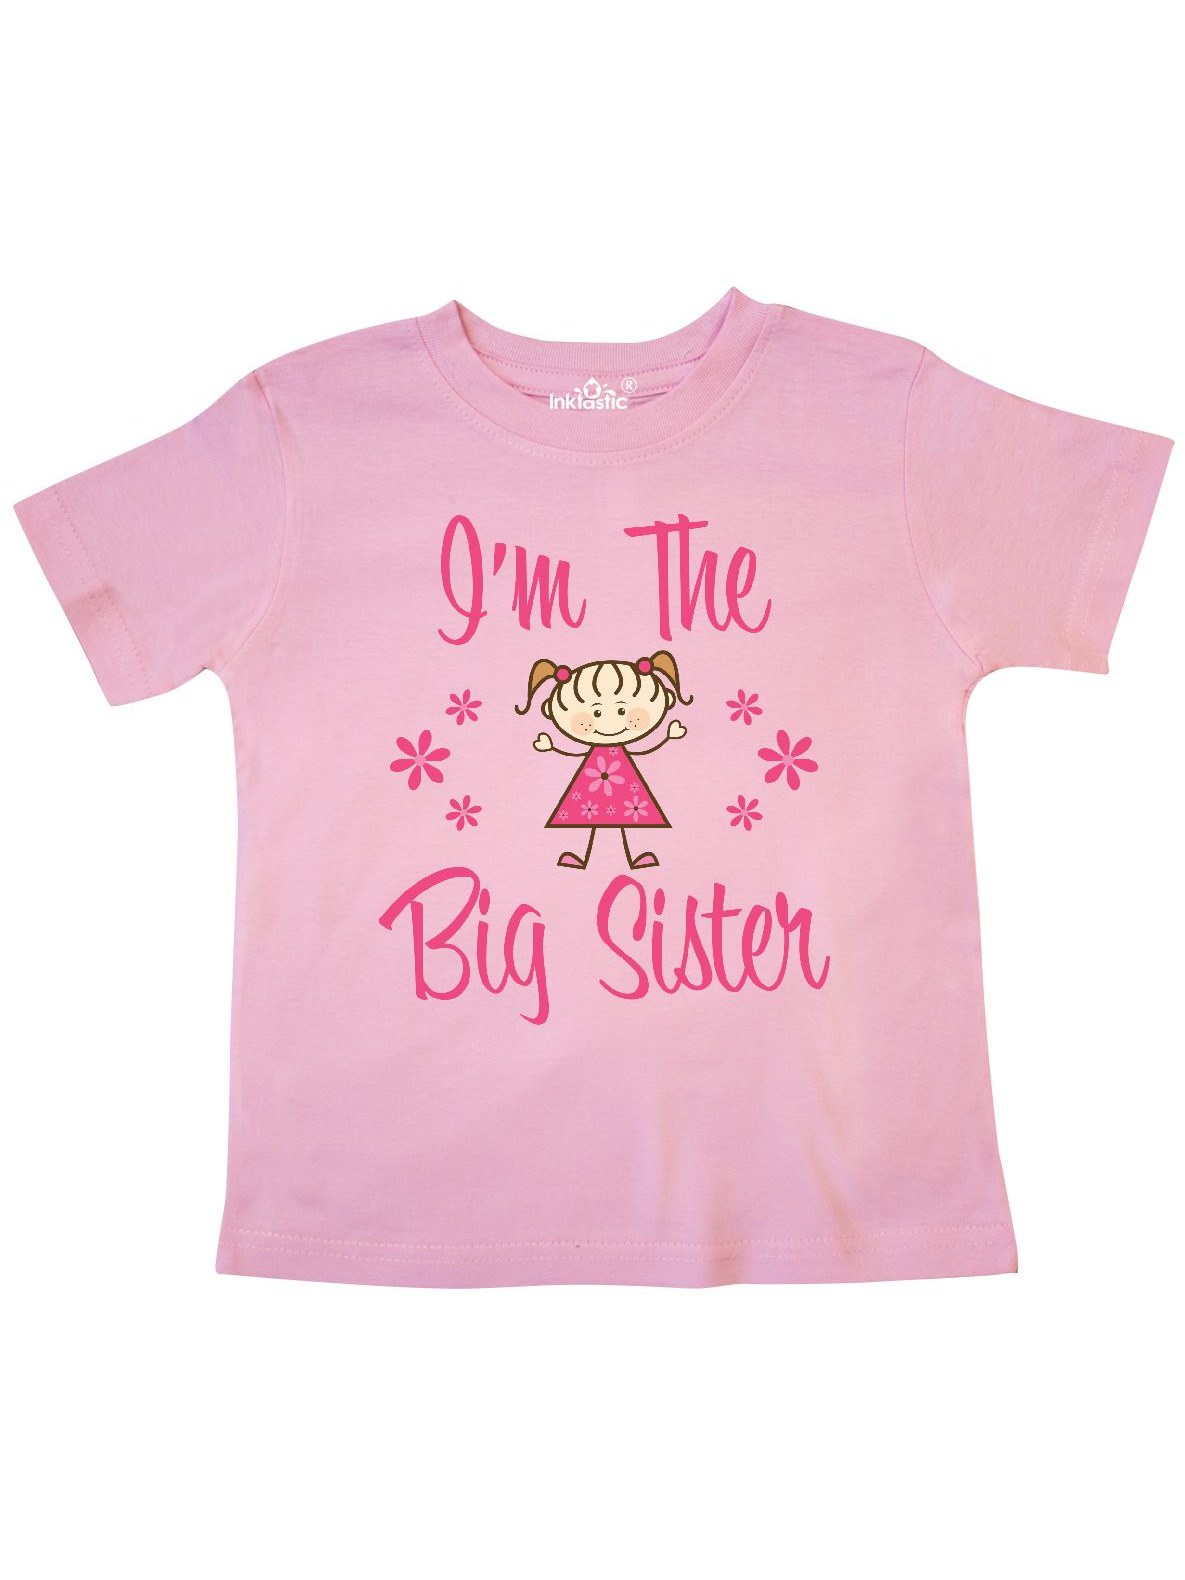 The Big Sister Toddler T-Shirt